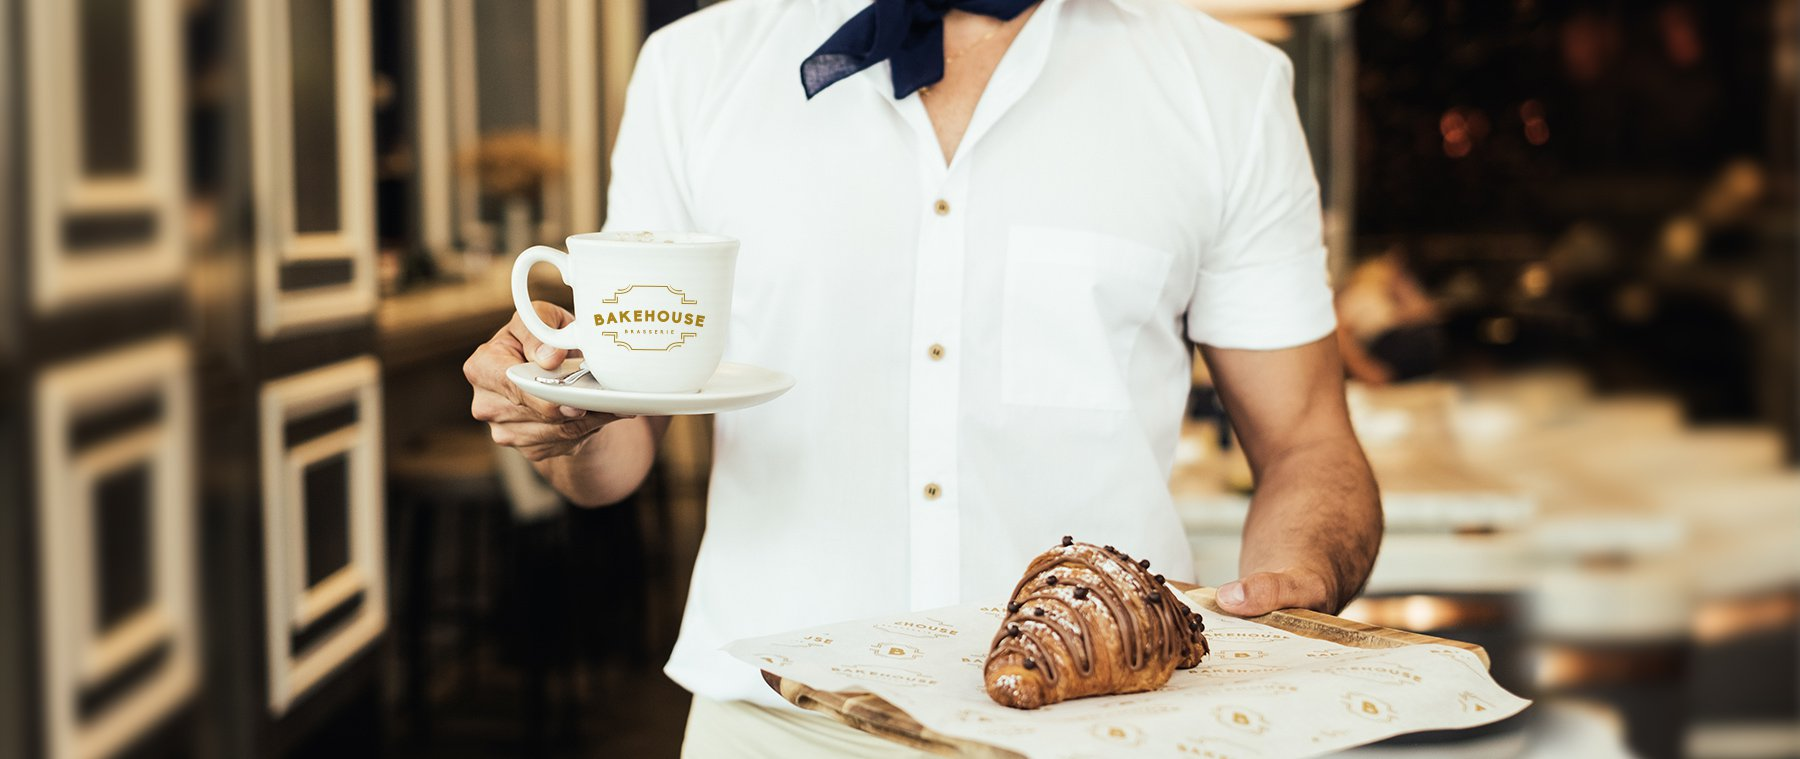 Jacober Creative identity design for Bakehouse Brasserie - Photo of a waitress holding a branded mug and pastry